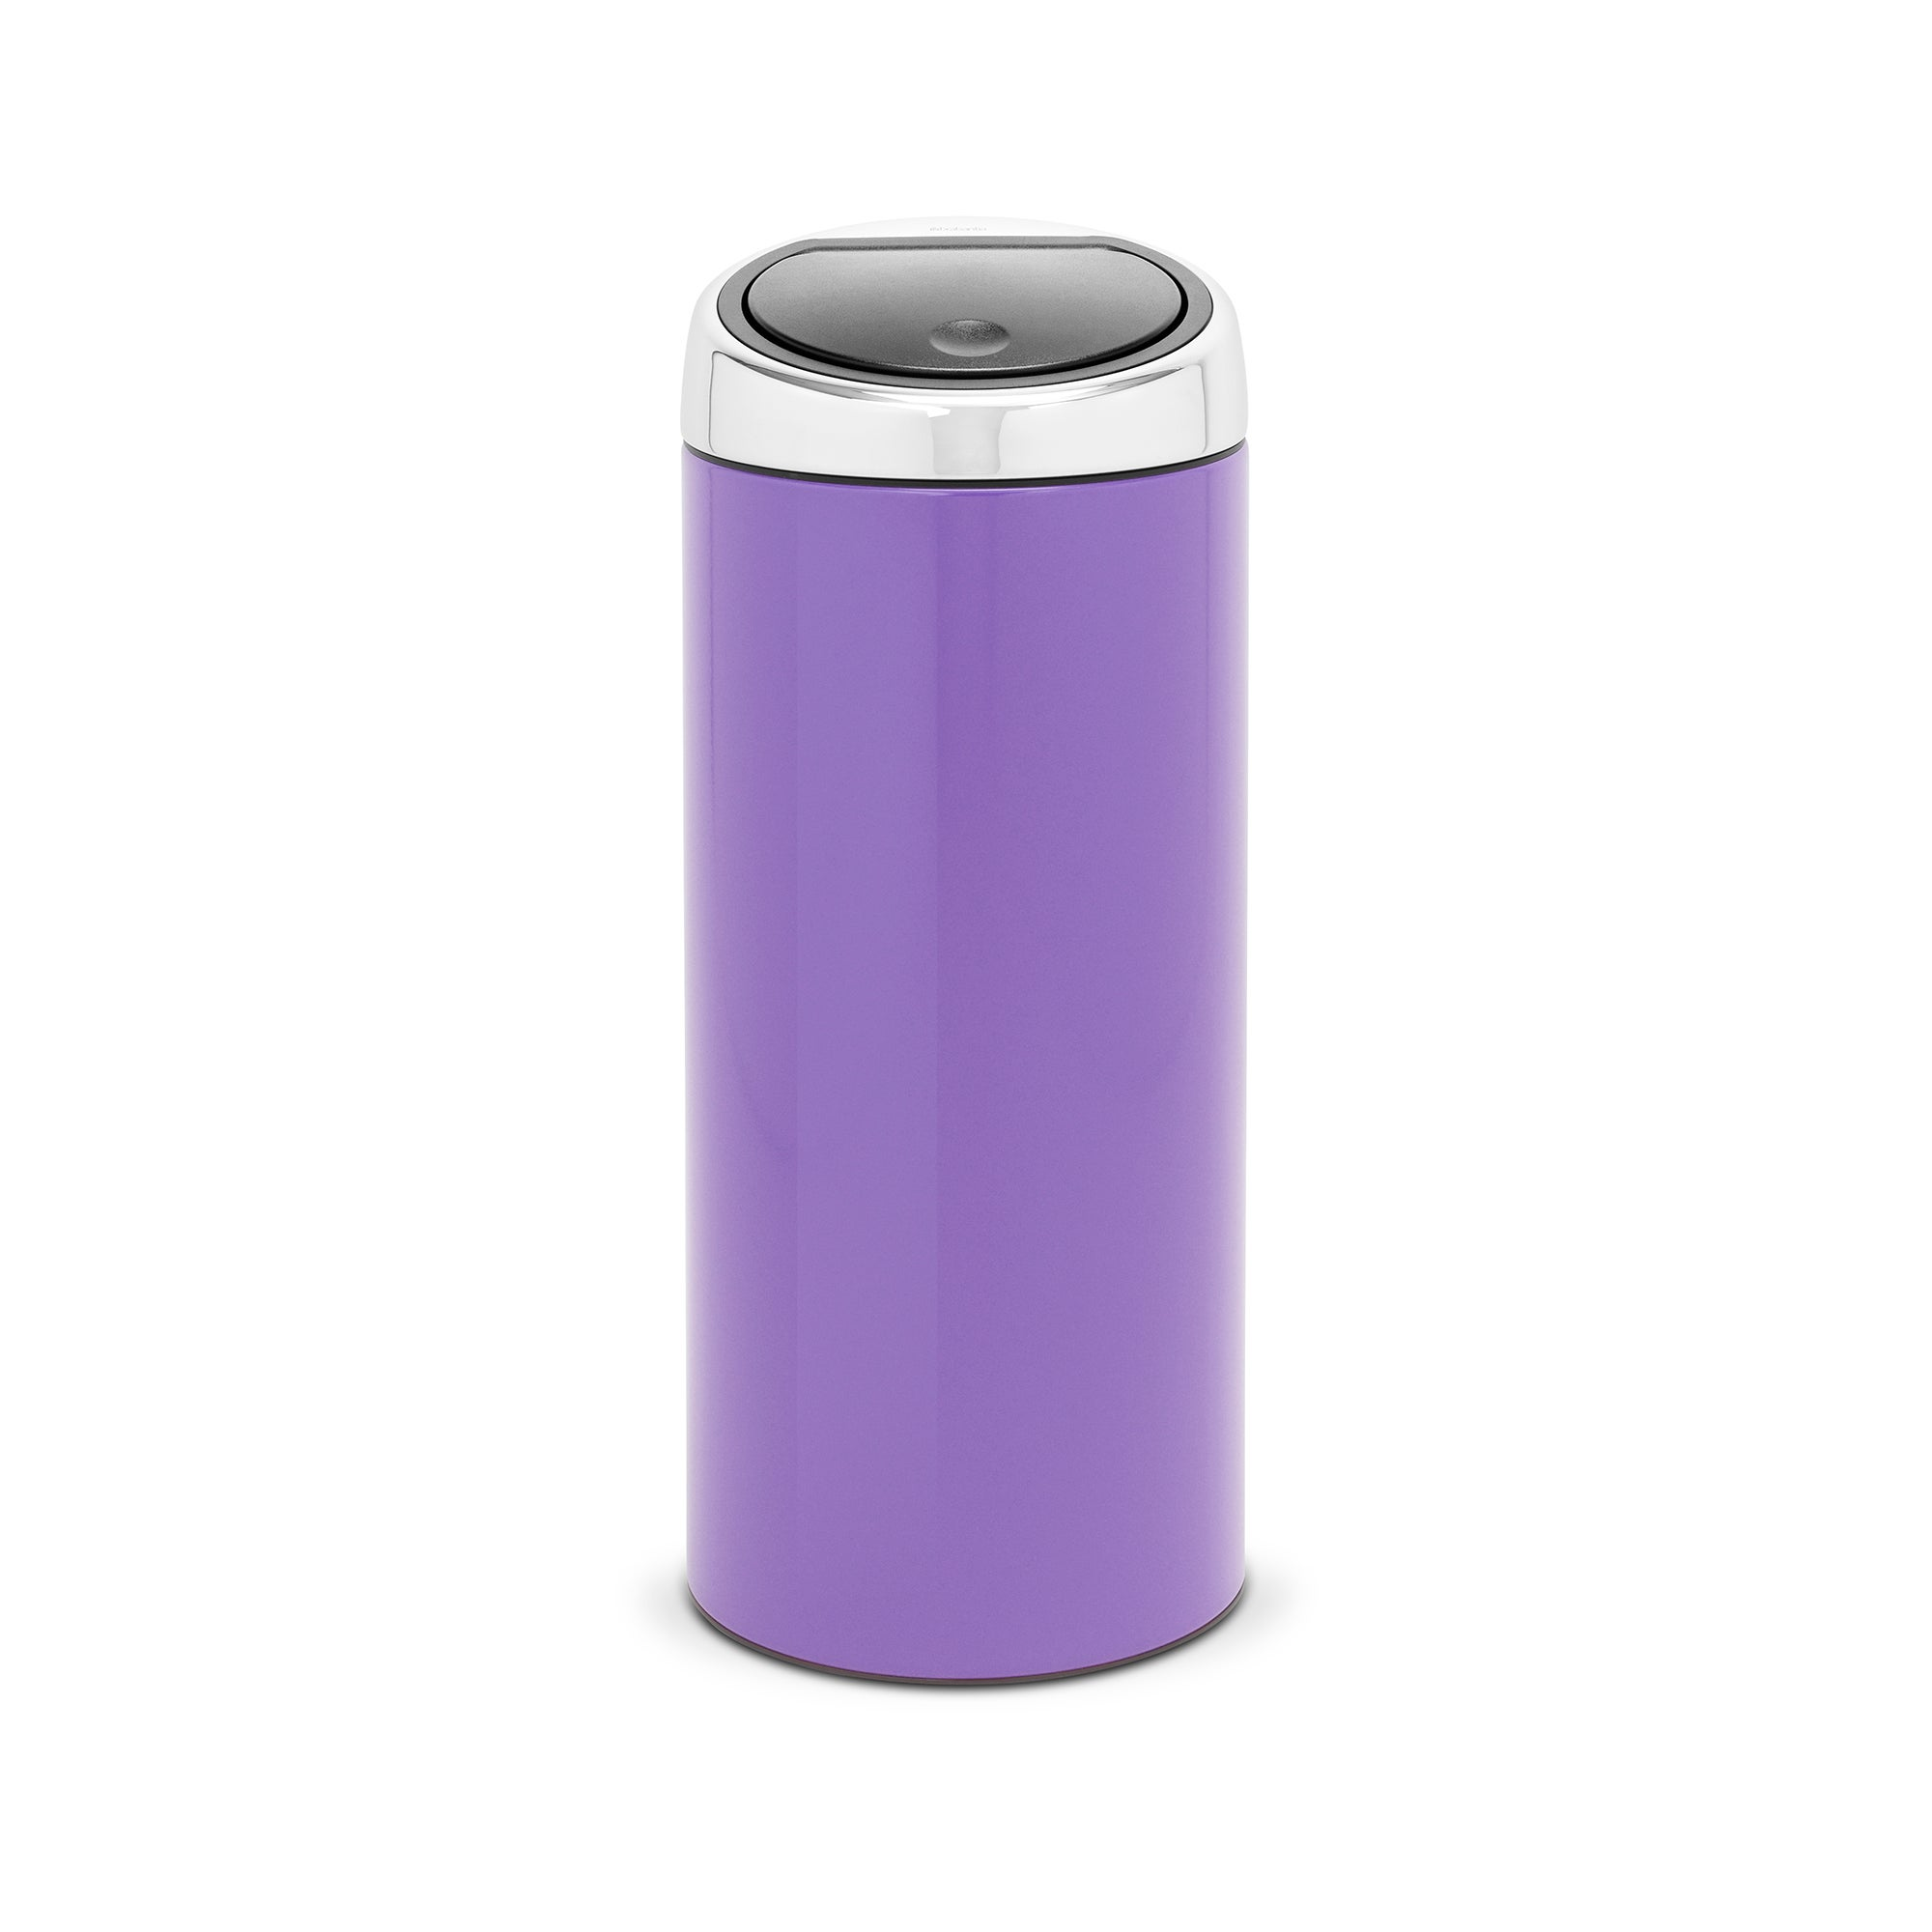 Brabantia Purple 30 Litre Lacquered Steel Touch Bin